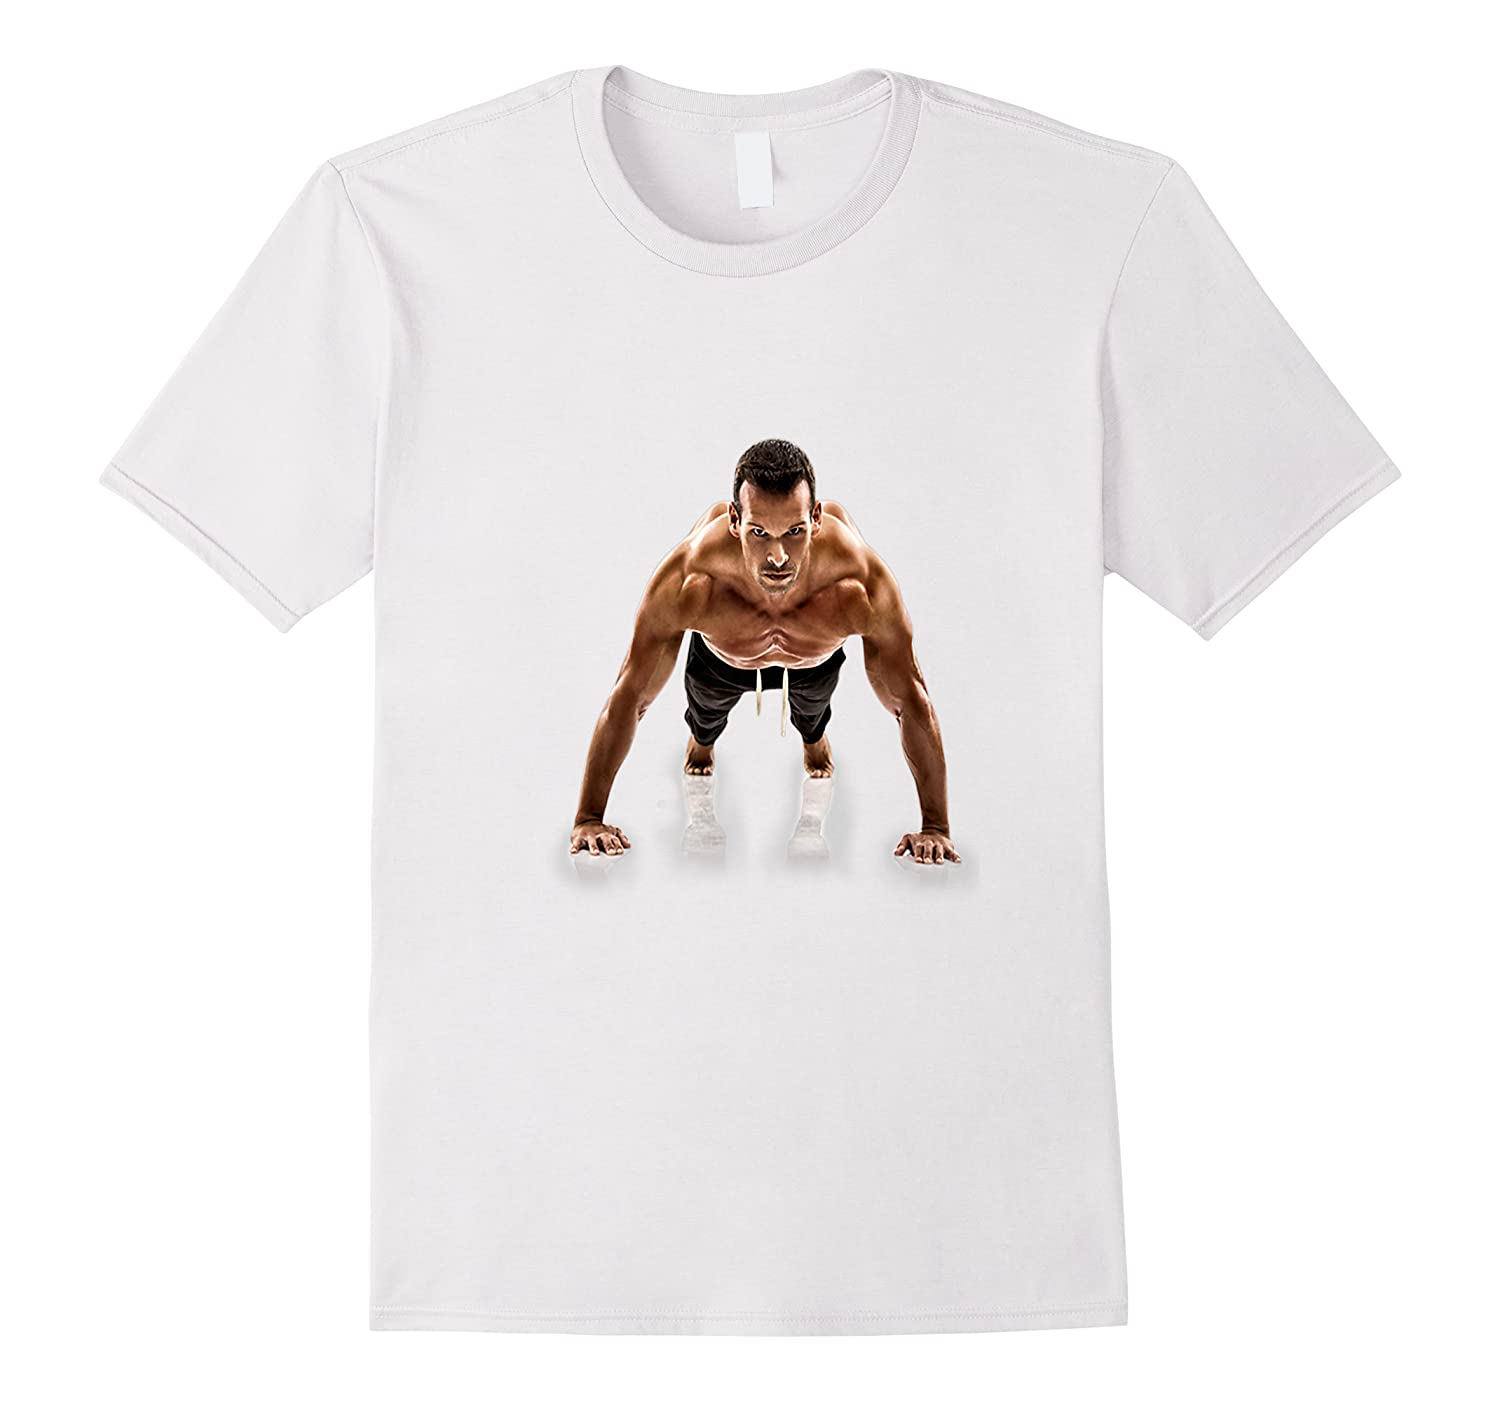 Funny Gym Ness Workout Sport Coach Man Boy Be Stronger Shirts